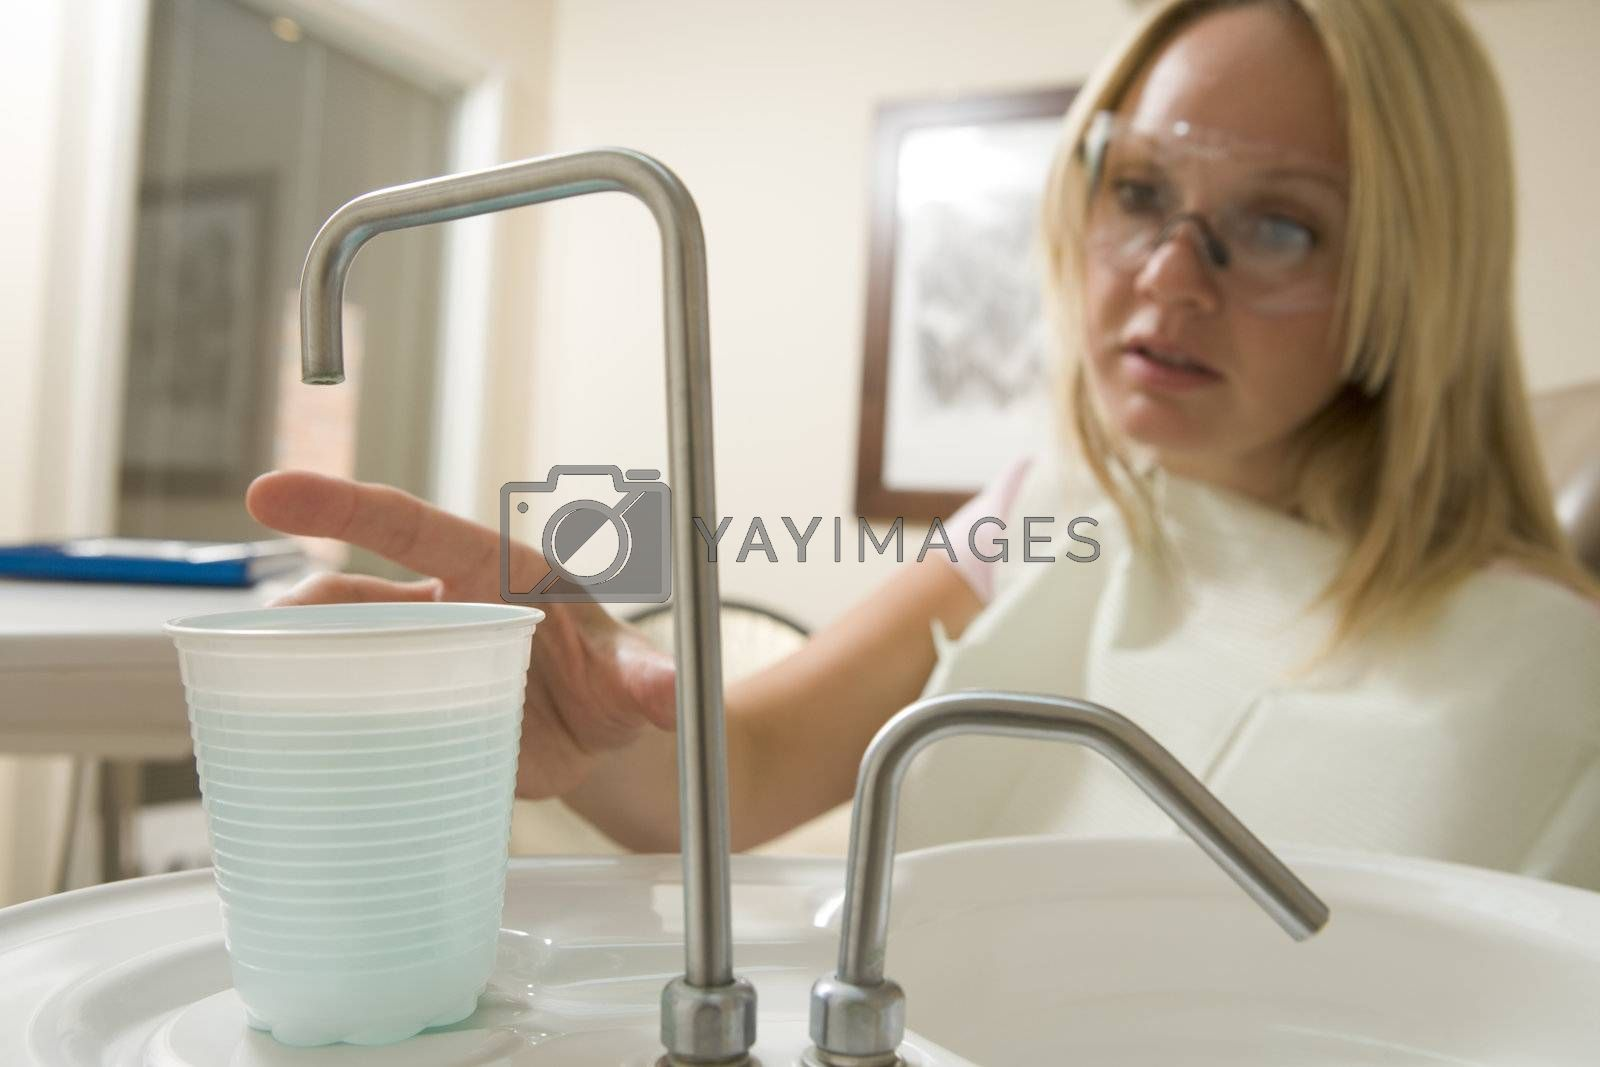 Woman in dental exam room reaching for water